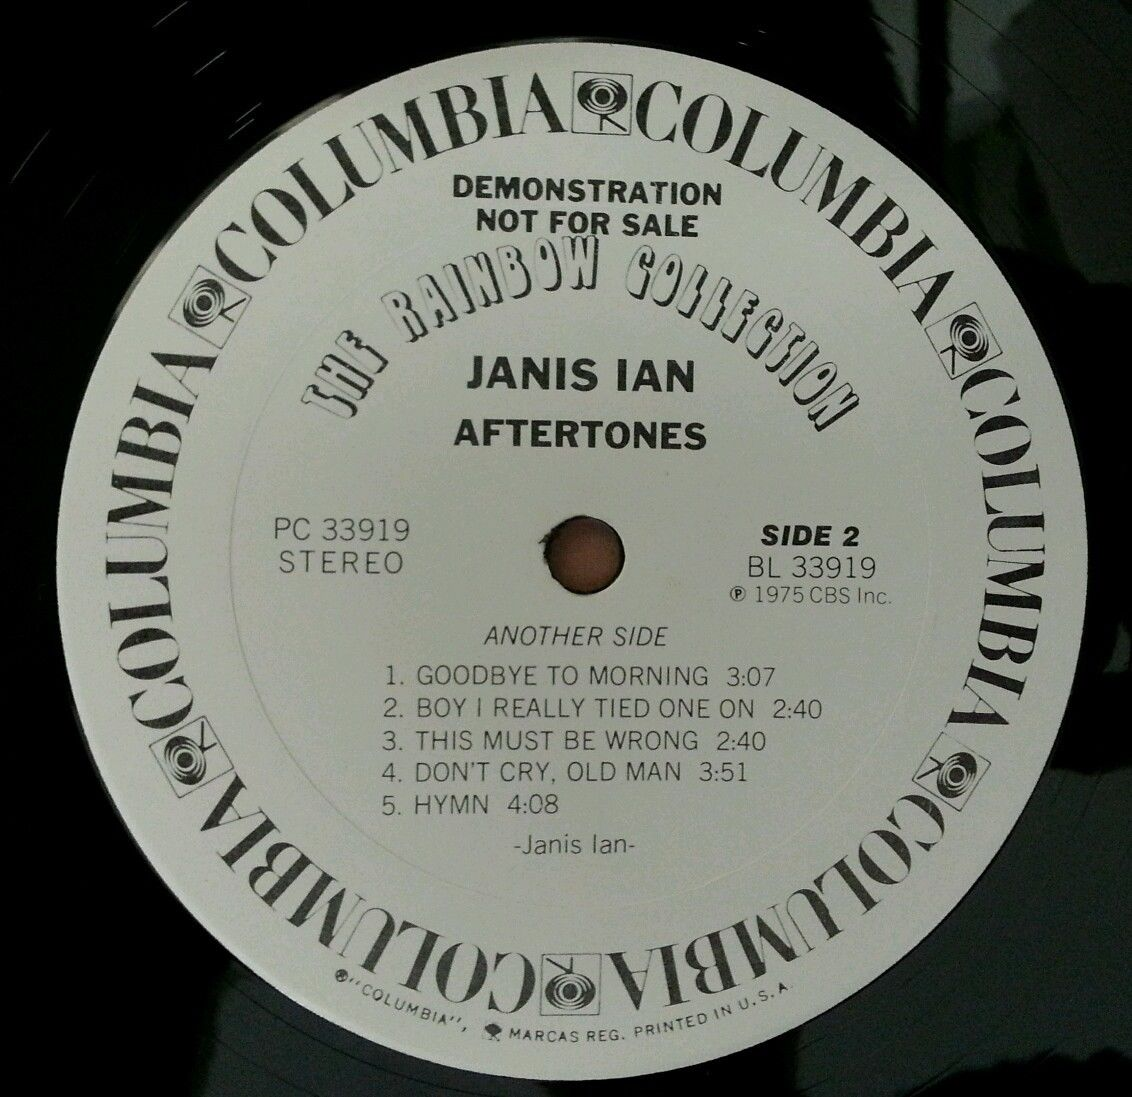 JANIS-IAN-Aftertones-Vinyl-Lp-Record-DEMO-Made-In-USA-White-Label-NMNM-281719601042-4